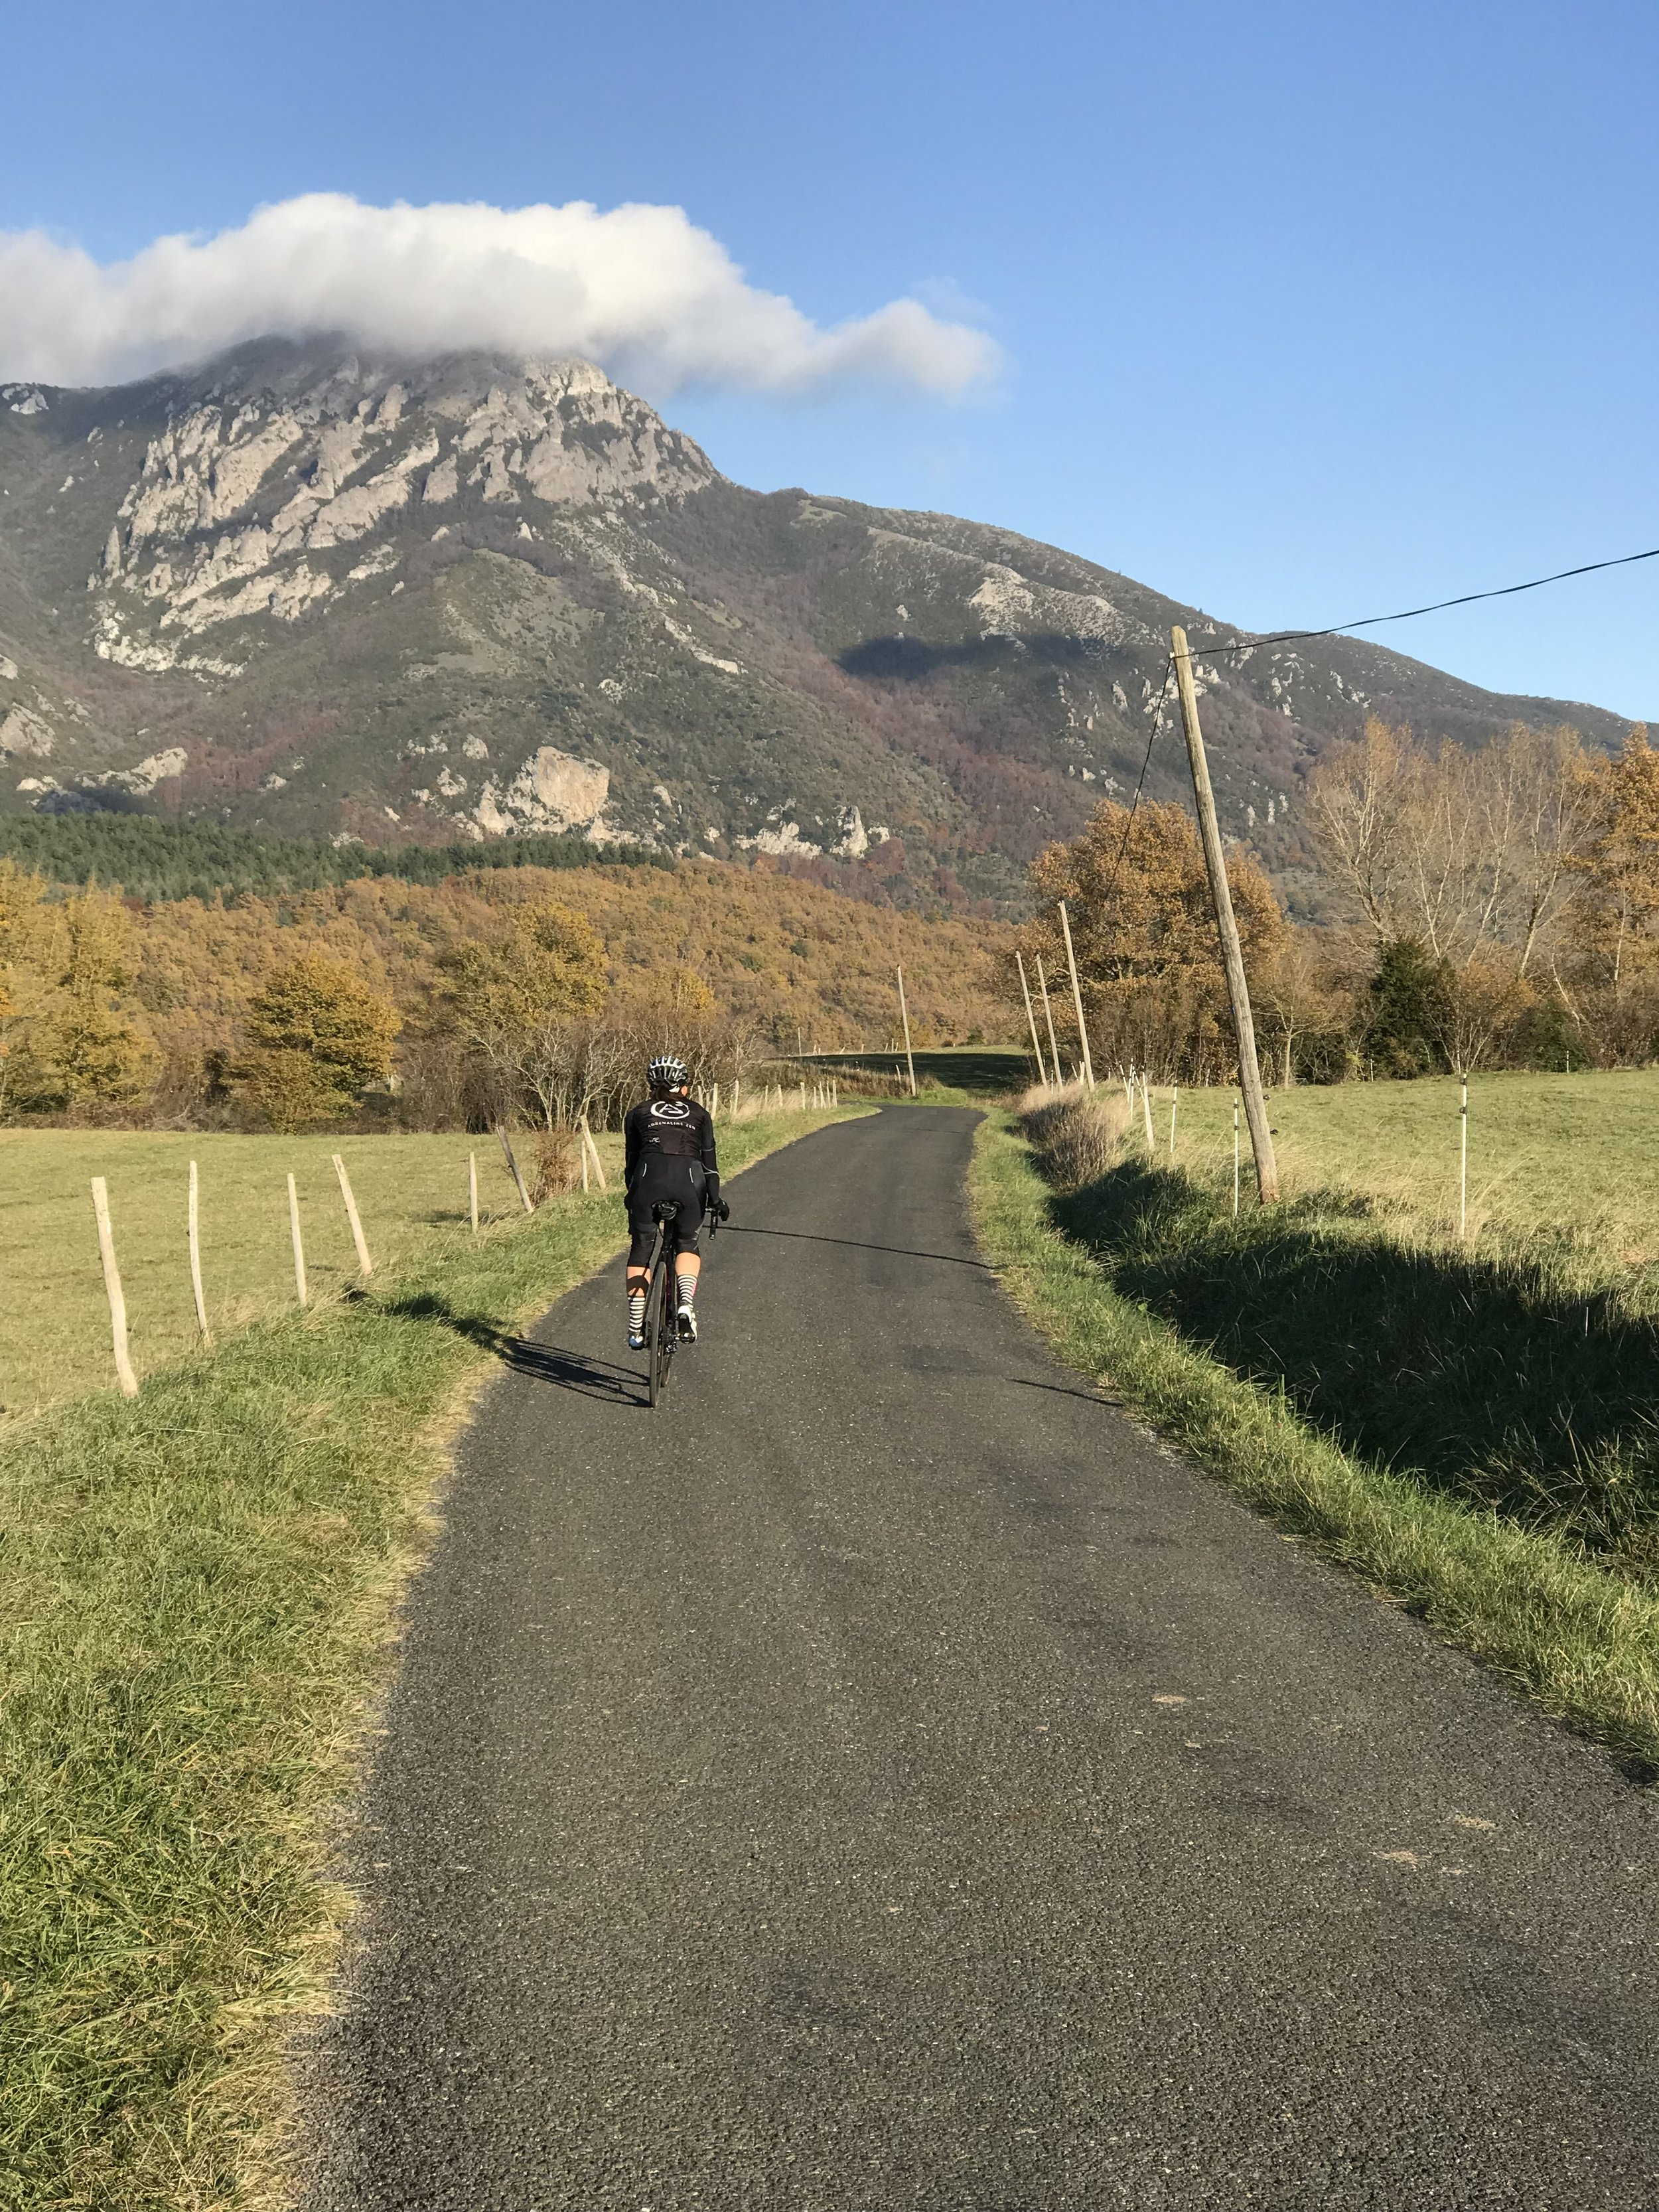 The roads in the Languedoc Region are quiet, scenic and well-maintained.